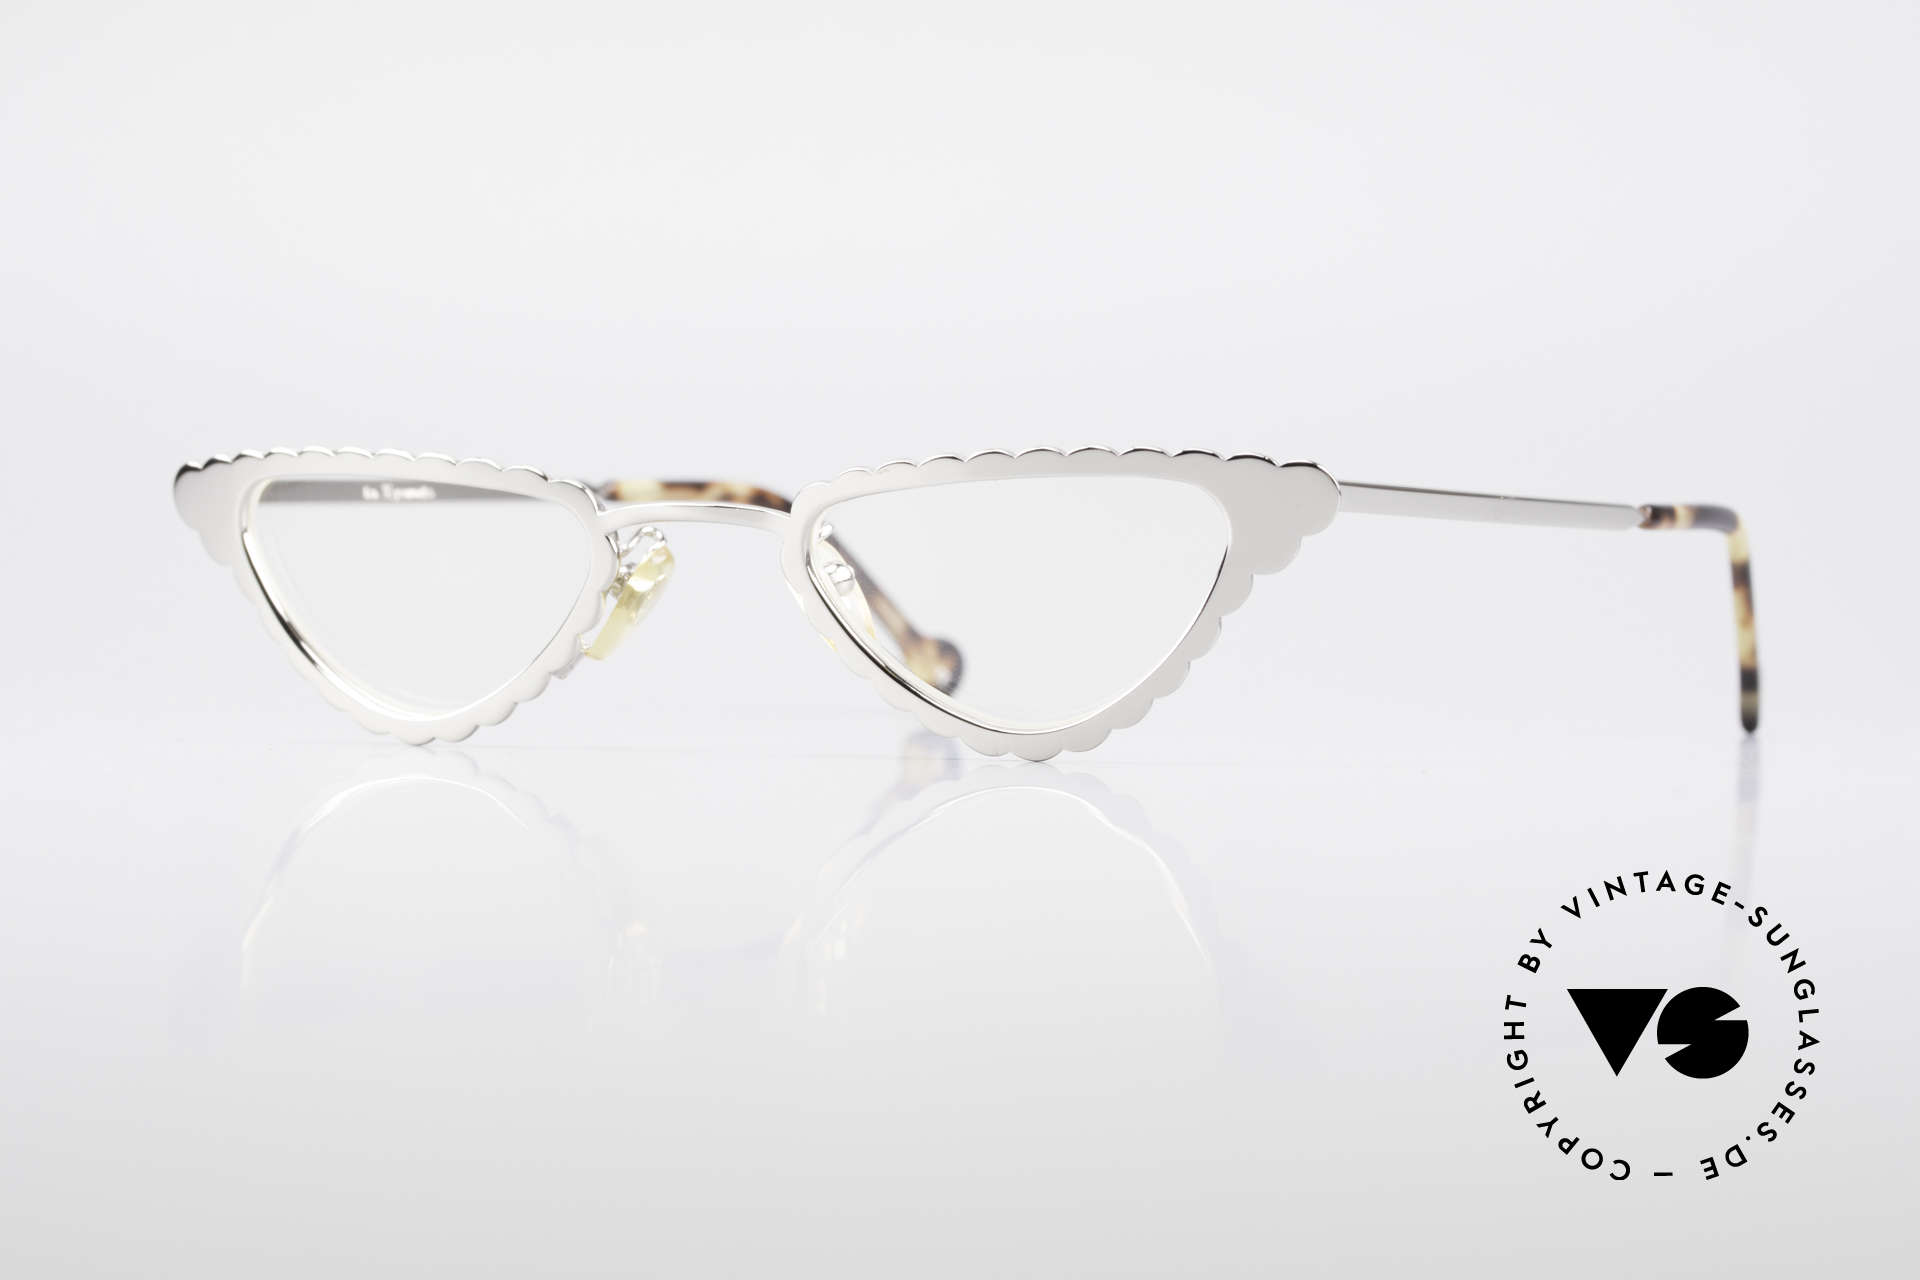 L.A. Eyeworks Macaroni 405 Reading Glasses Like A Leaf, interesting vintage reading glasses by L.A. EYEWORKS, Made for Women